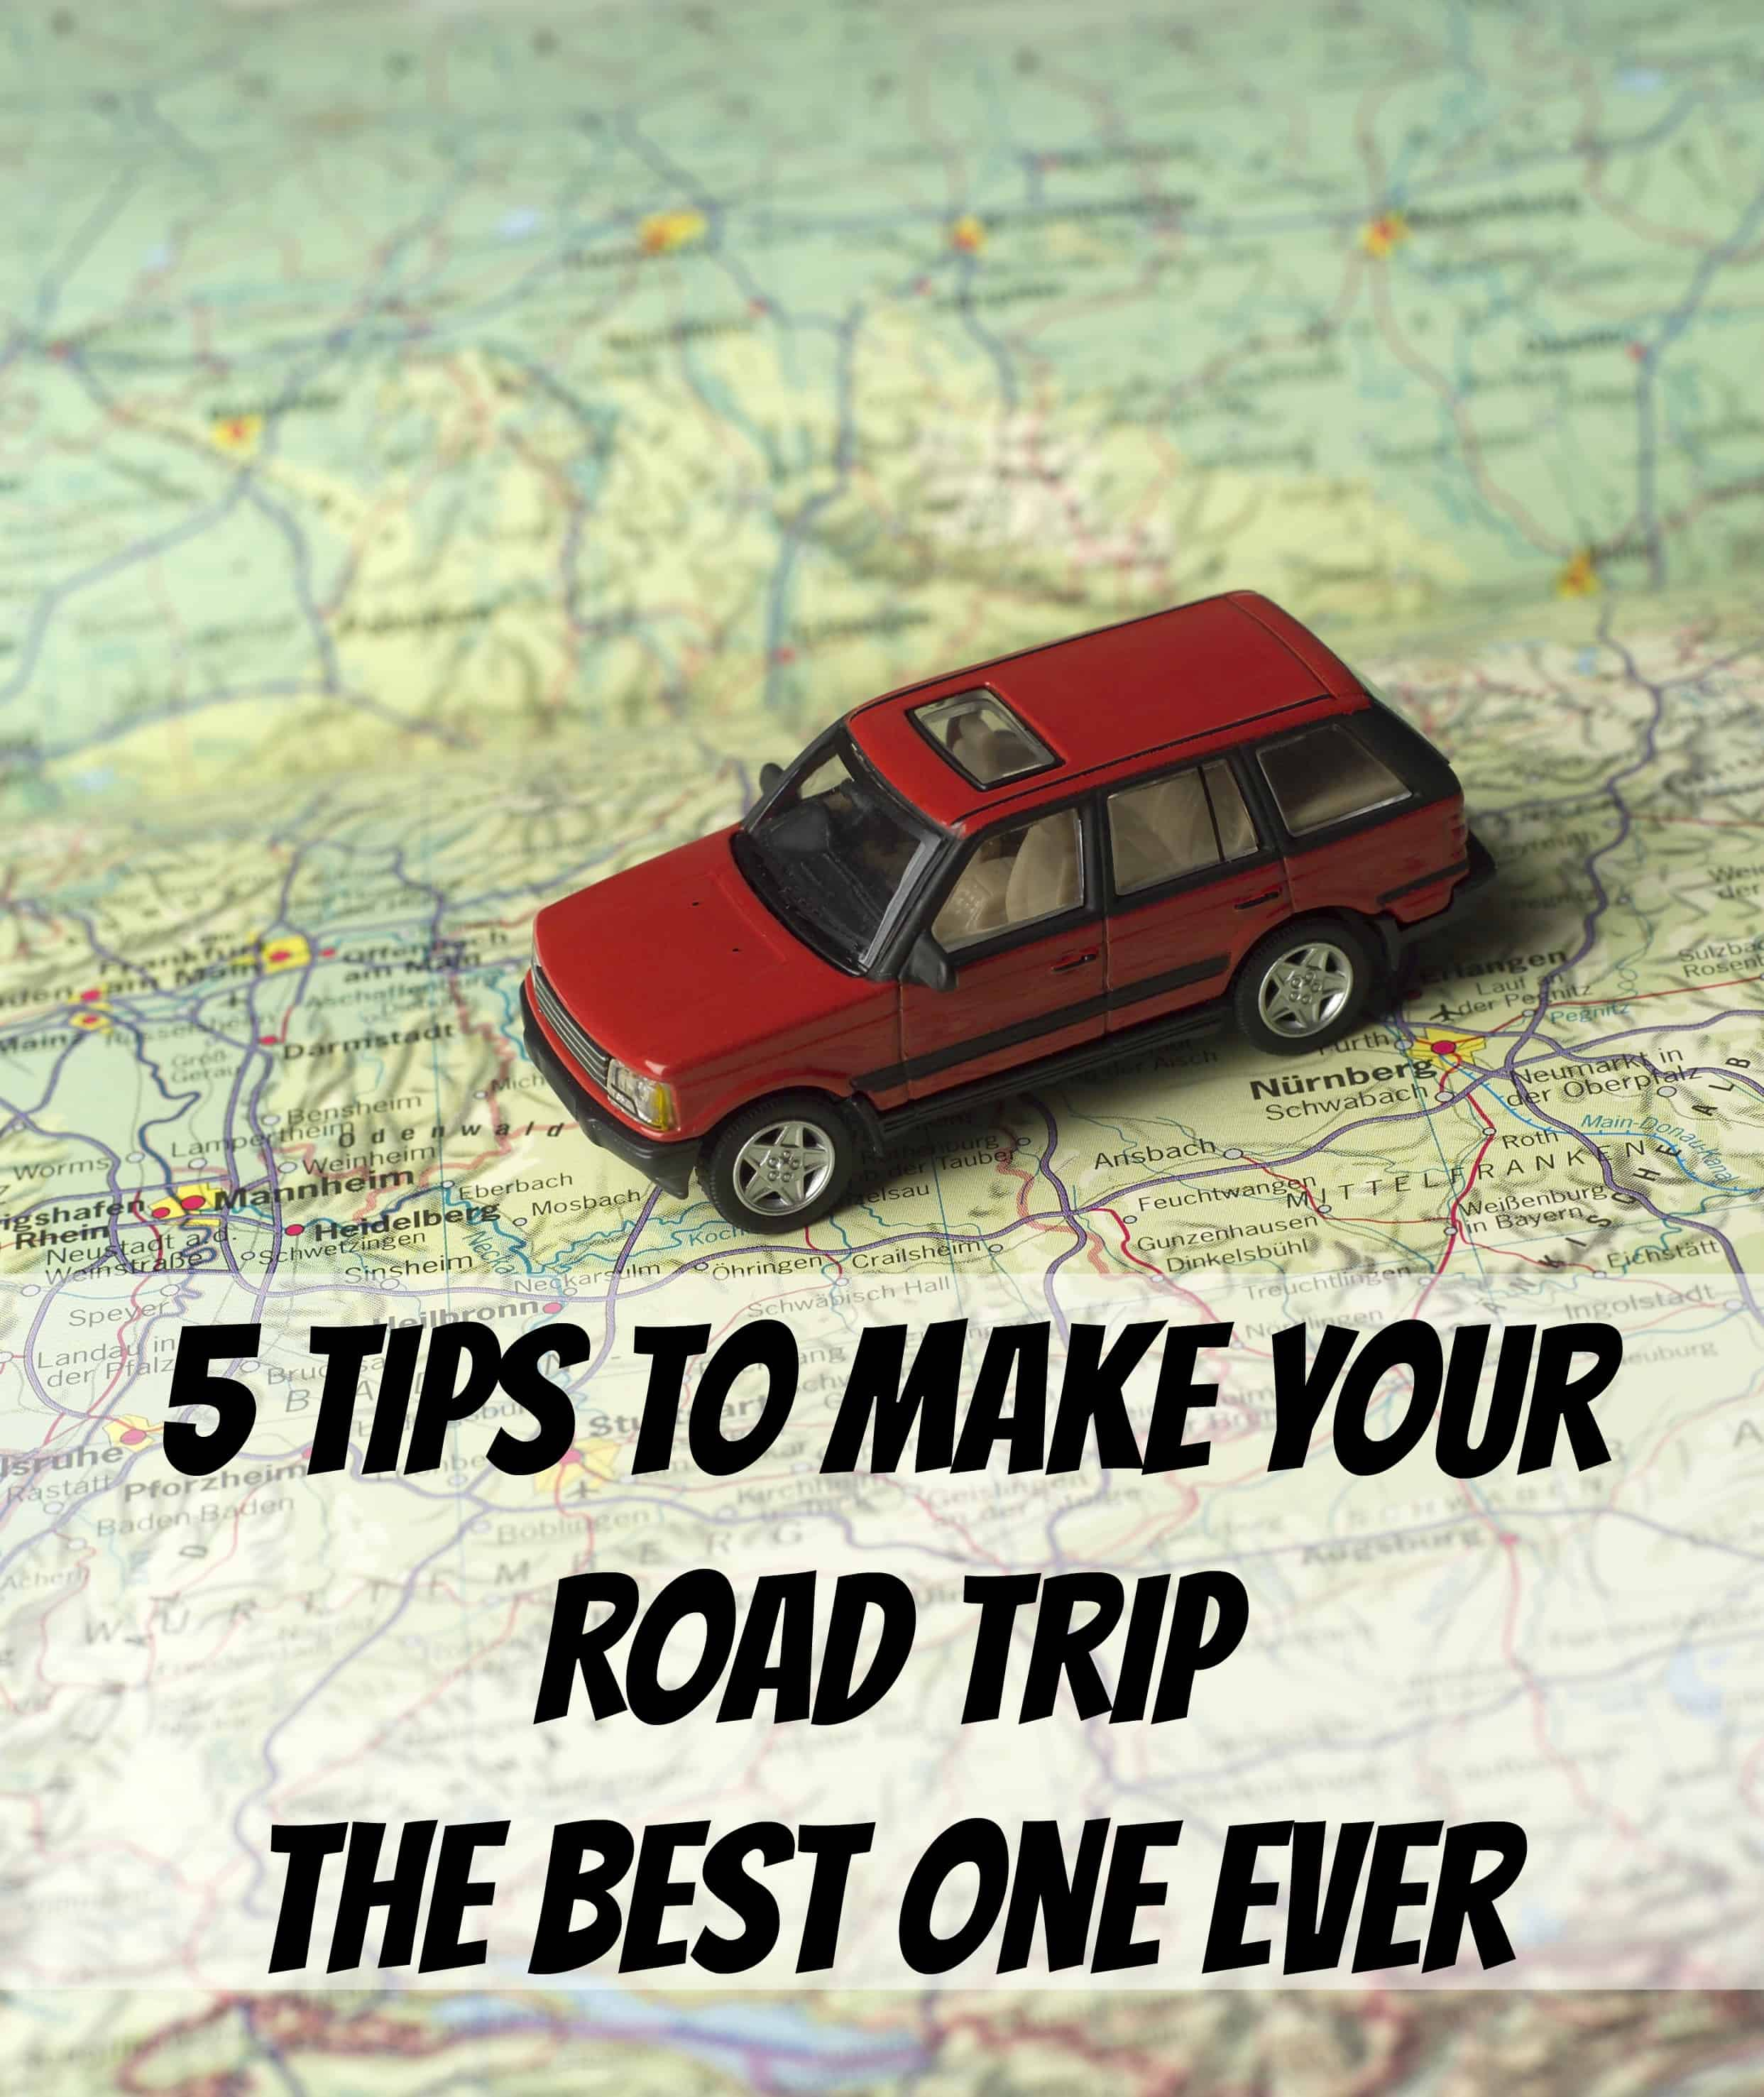 How to make sure that our trip across the USA is a memorable one? Read on to learn more about some useful tips!